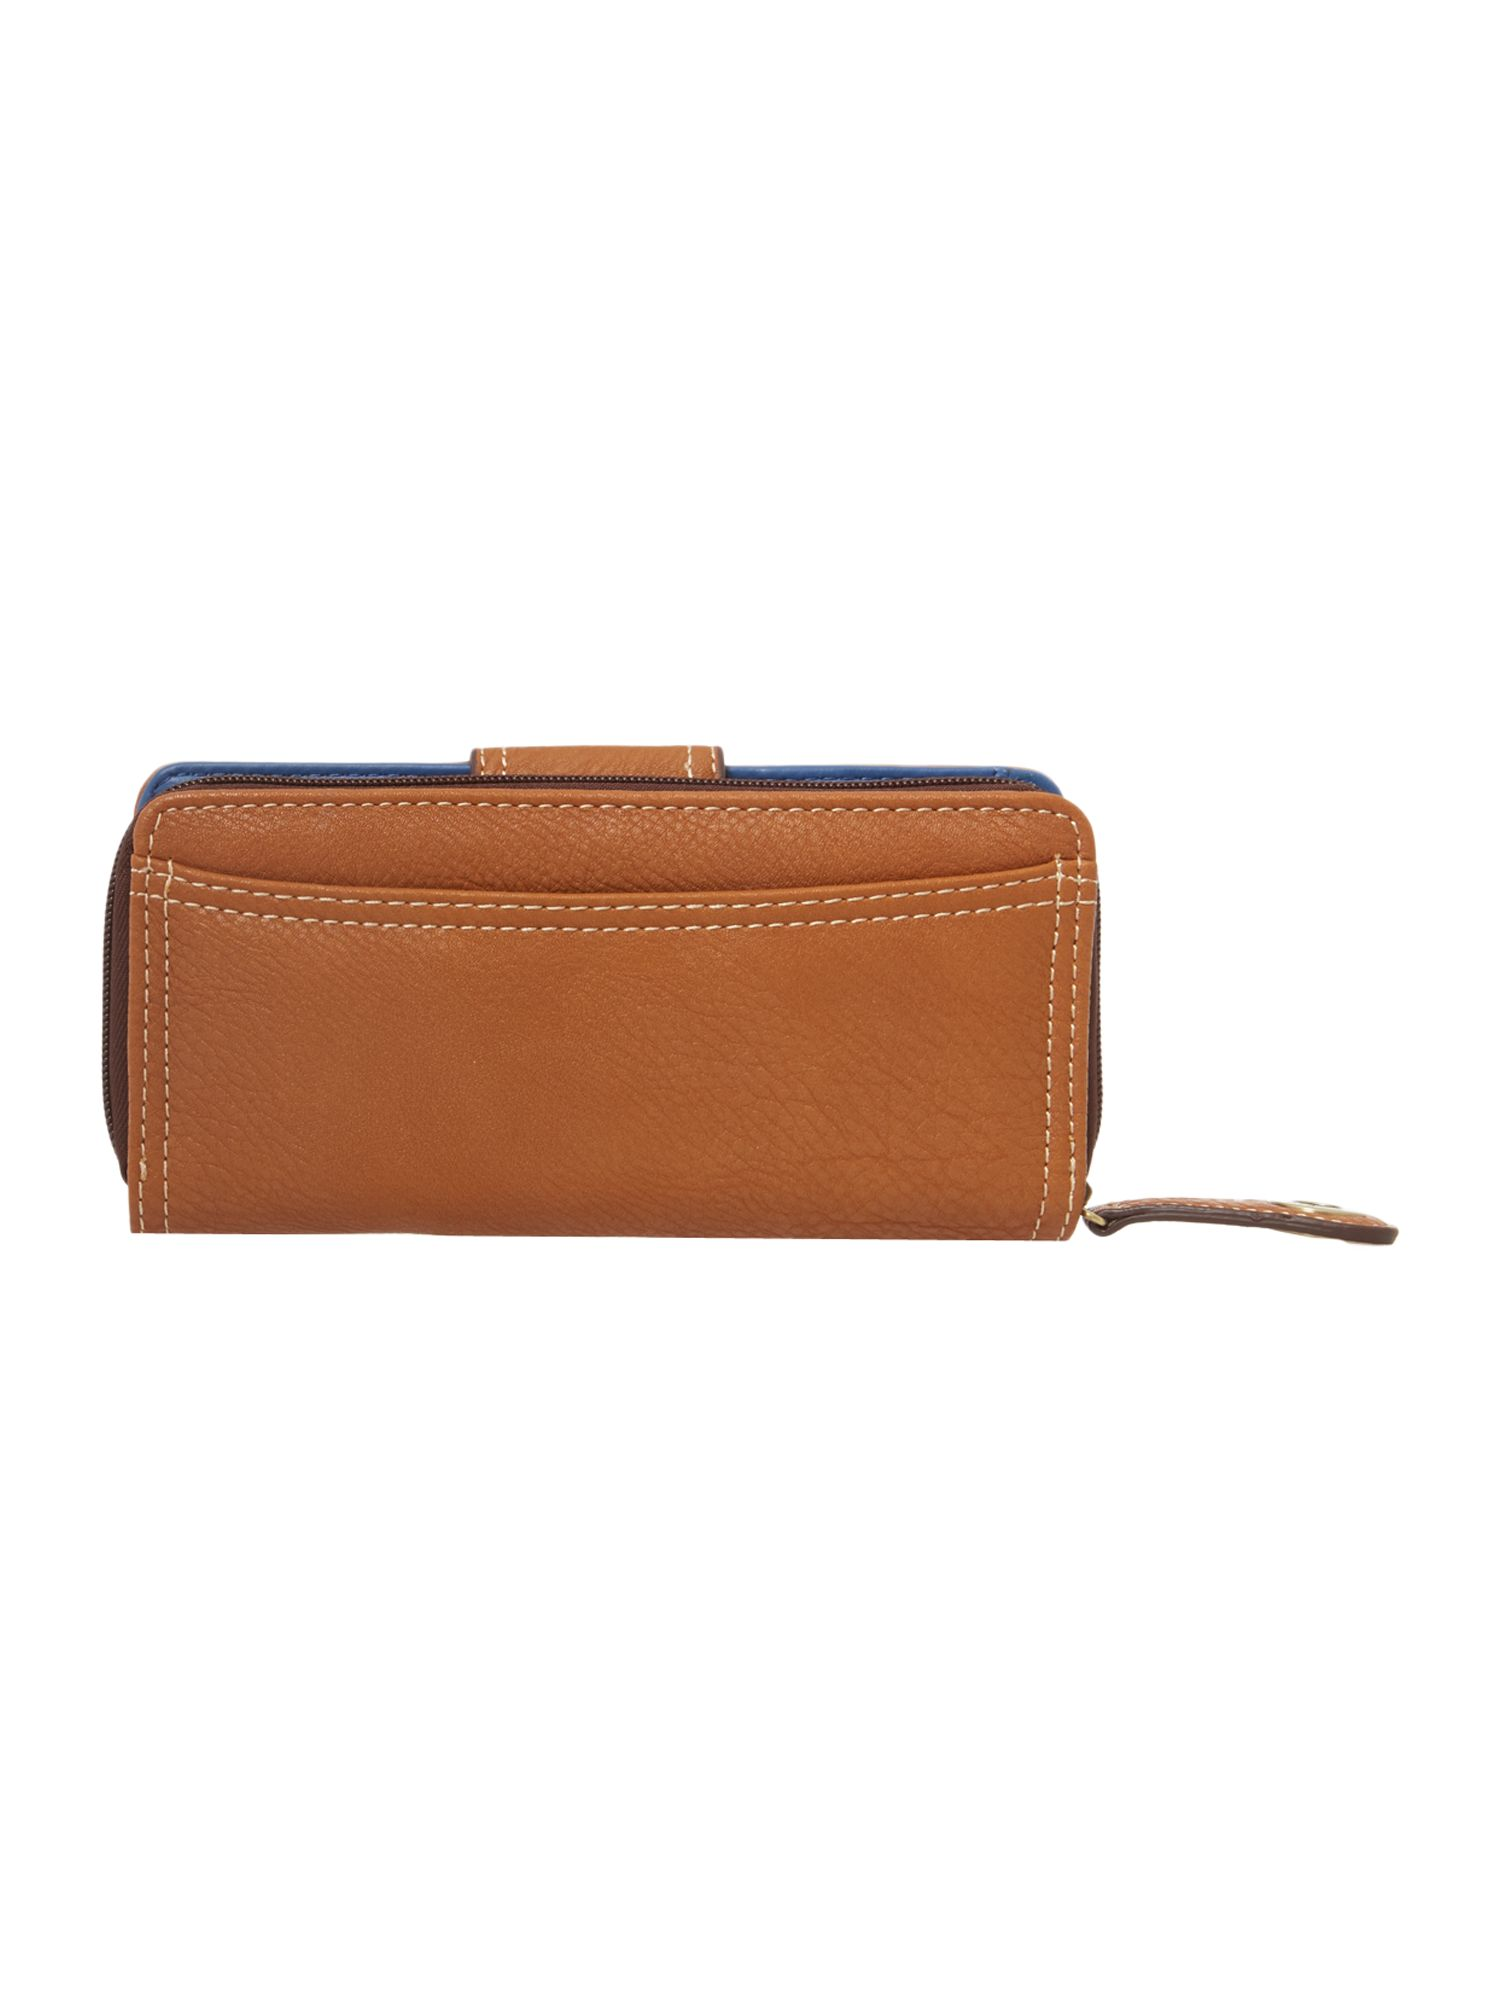 Amber large tan zip around purse